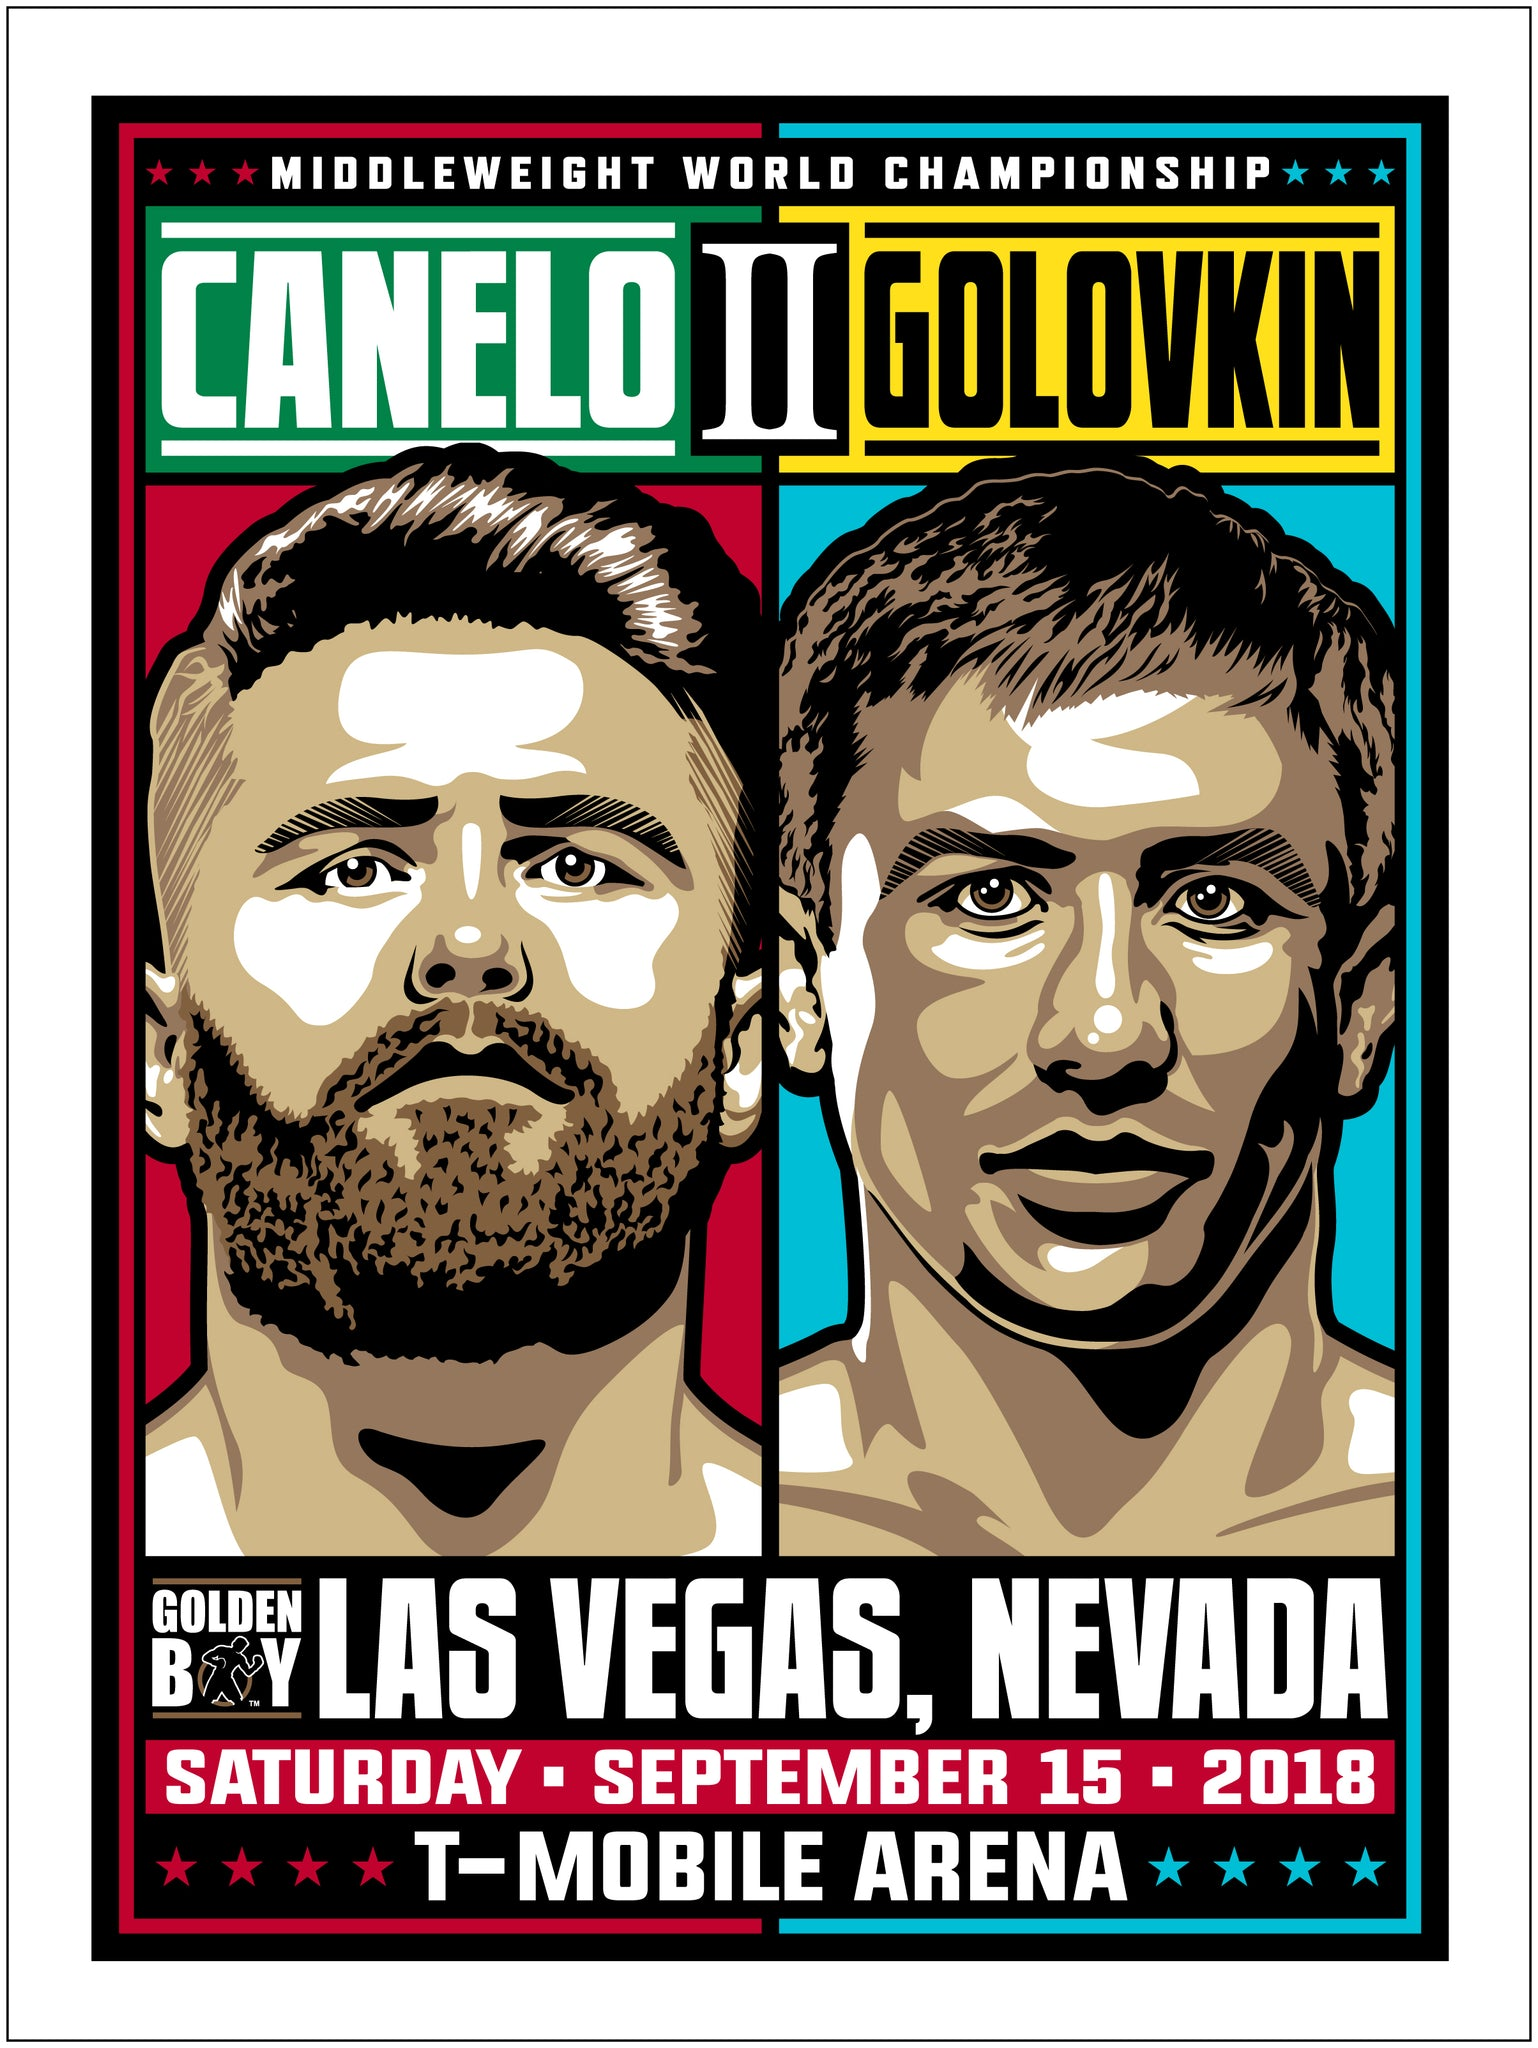 Canelo vs GGG 2 Middleweight Championship Serigraph- Presell Ships June 15th